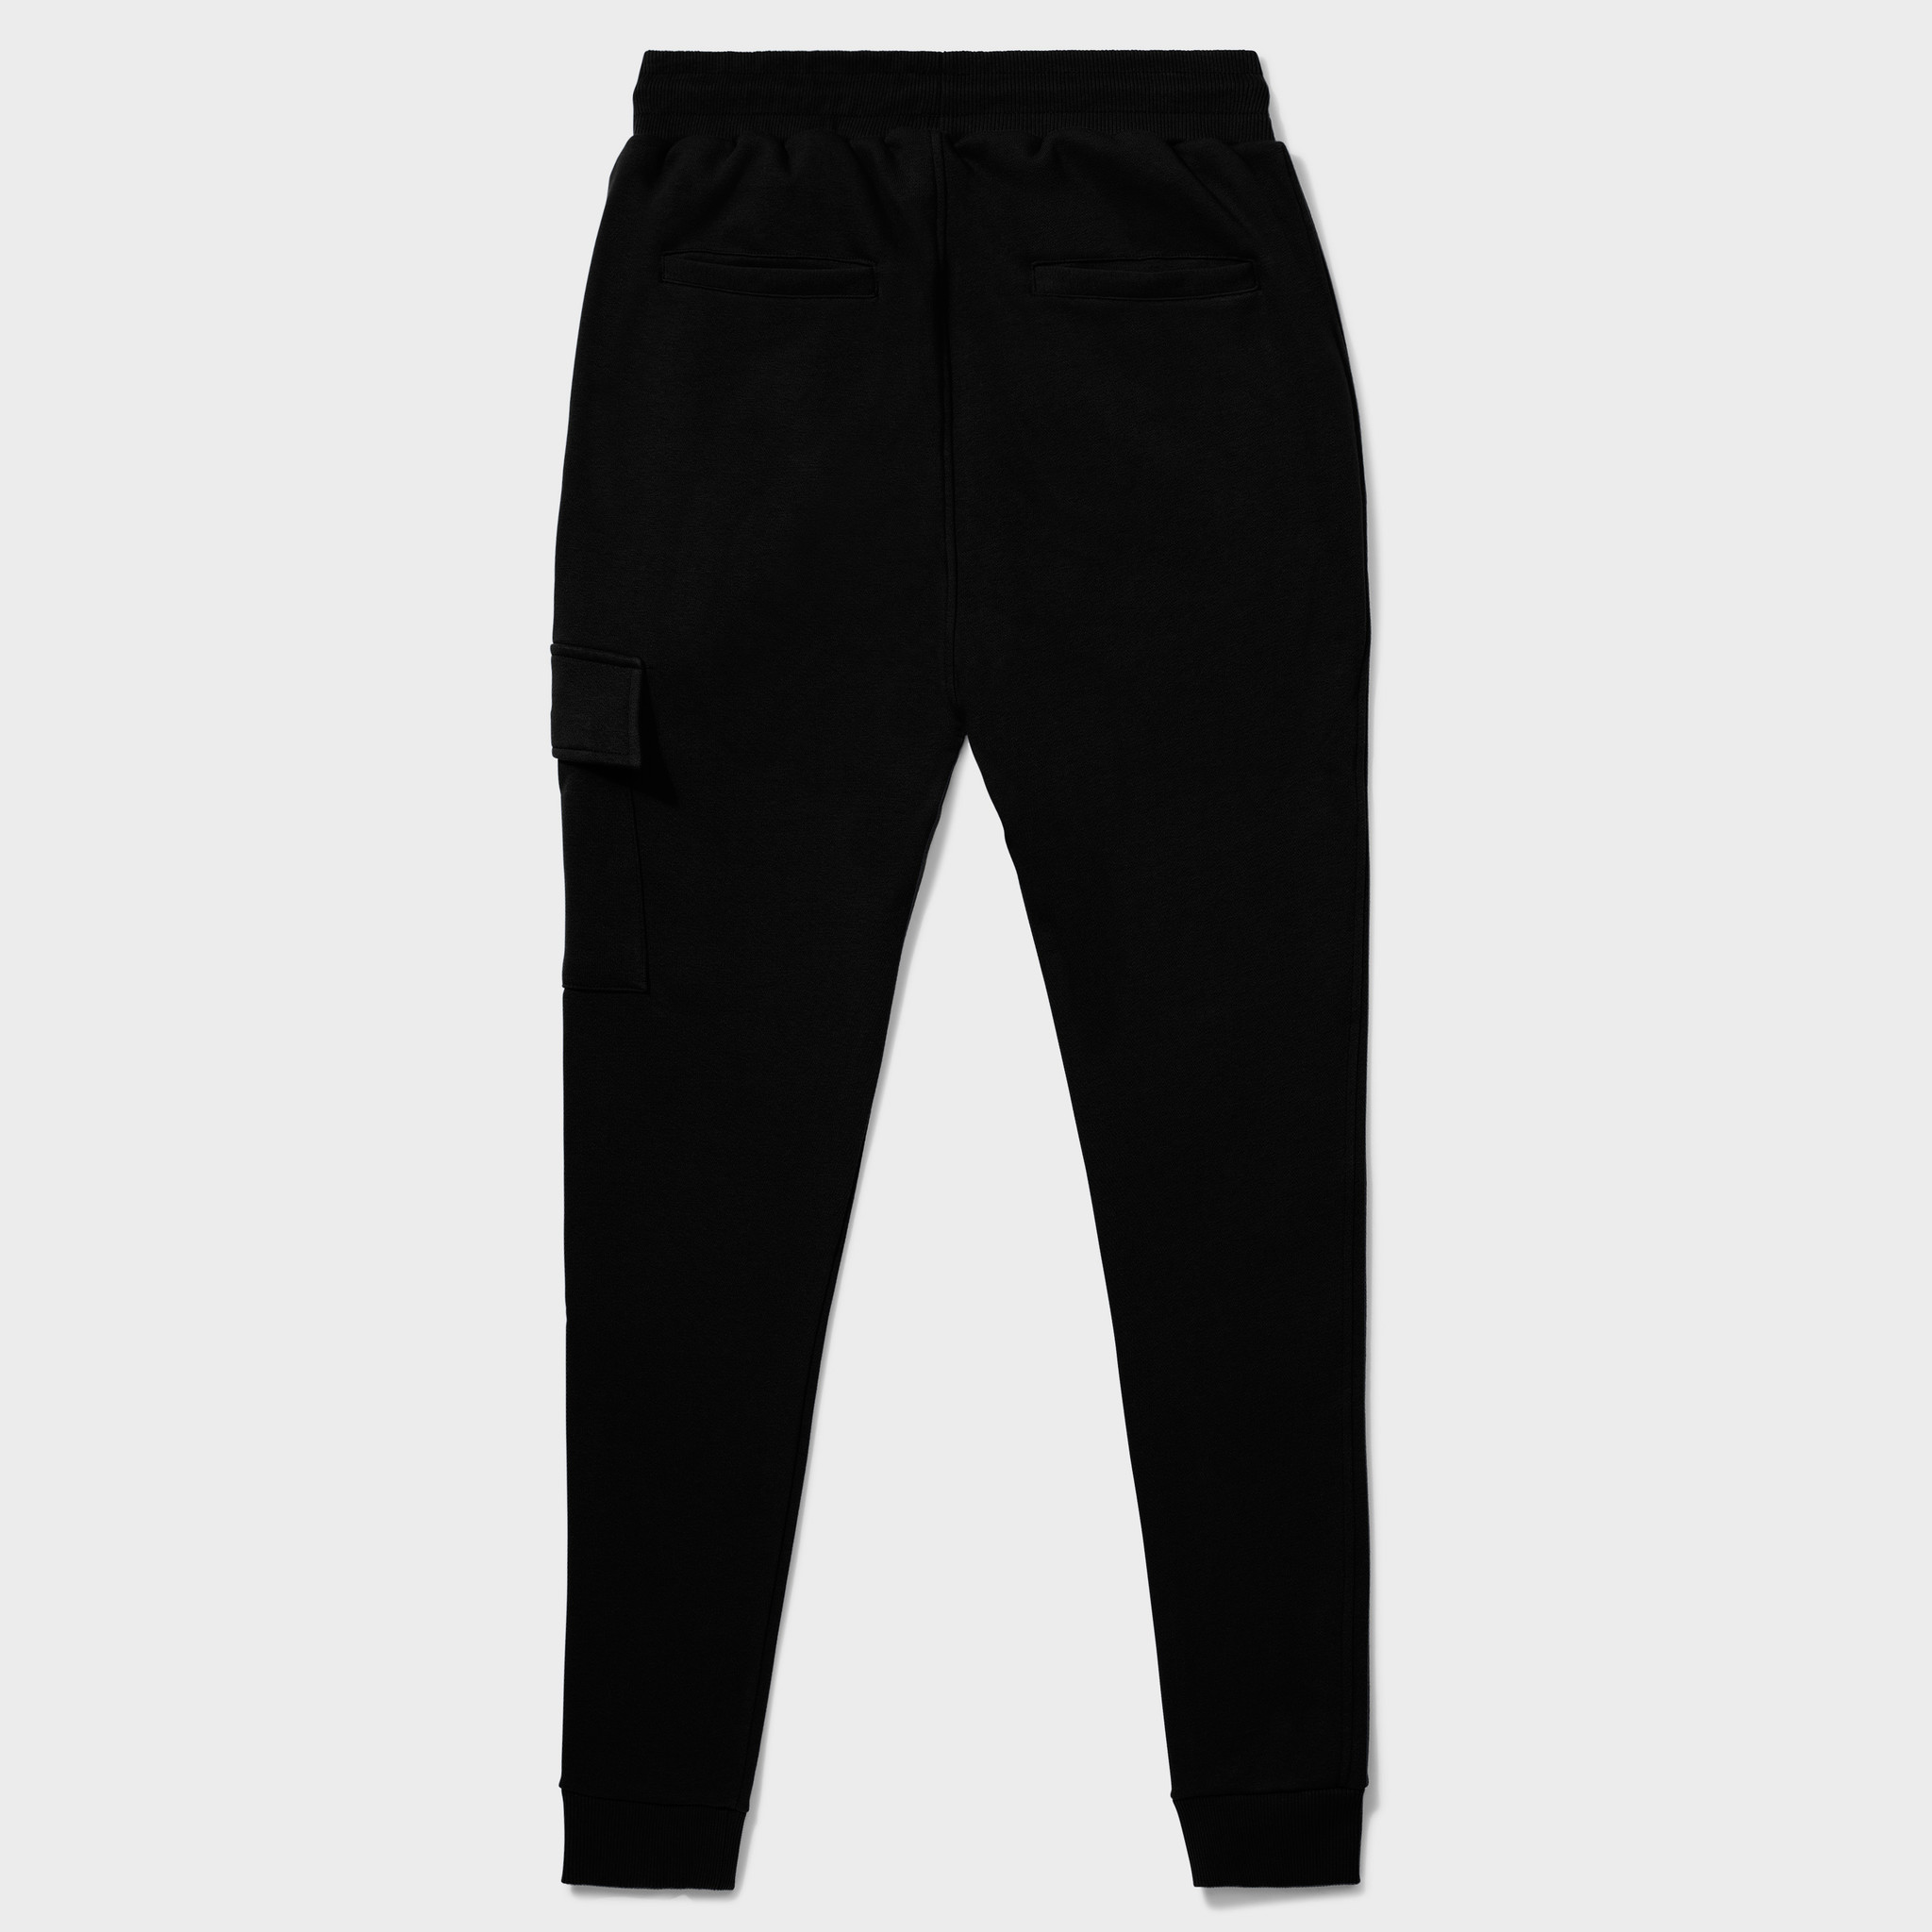 SIGNATURE TRACKSUIT BLACK & WHITE-8